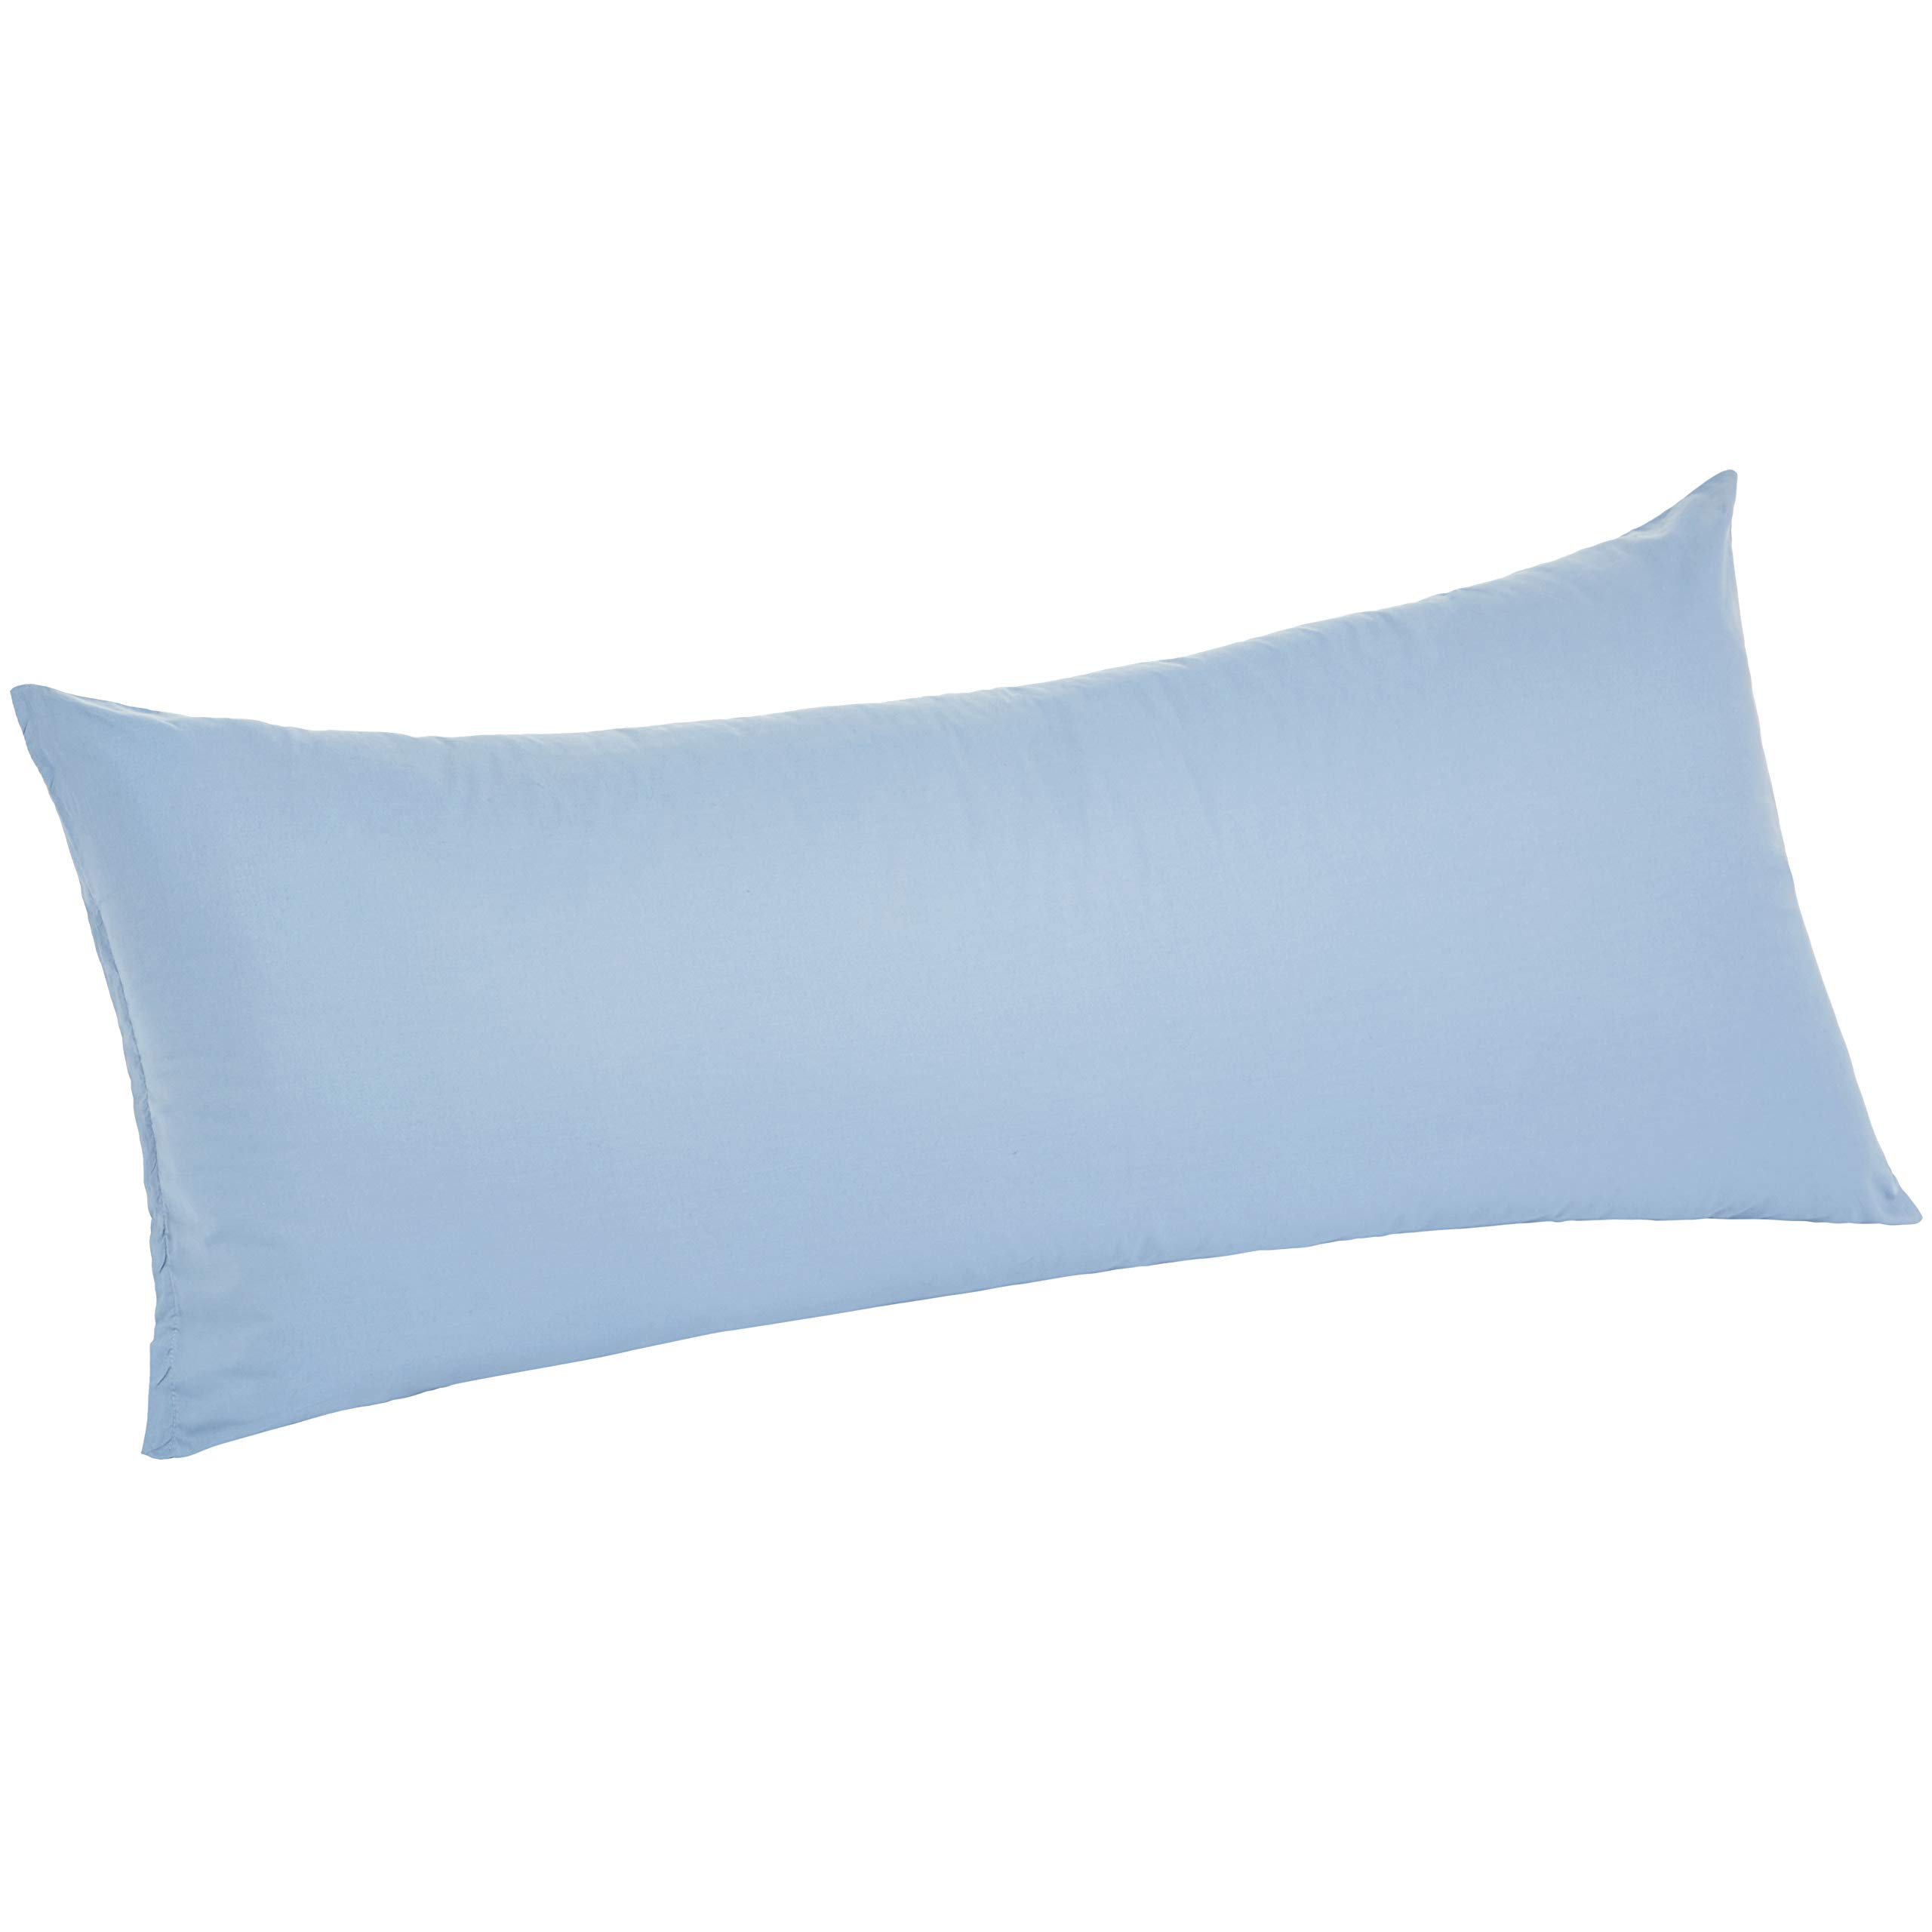 """AmazonBasics Ultra-Soft Body Pillow Cover Pillowcase, Breathable, Easy to Wash, 55"""" x 21"""", Dusty Blue"""